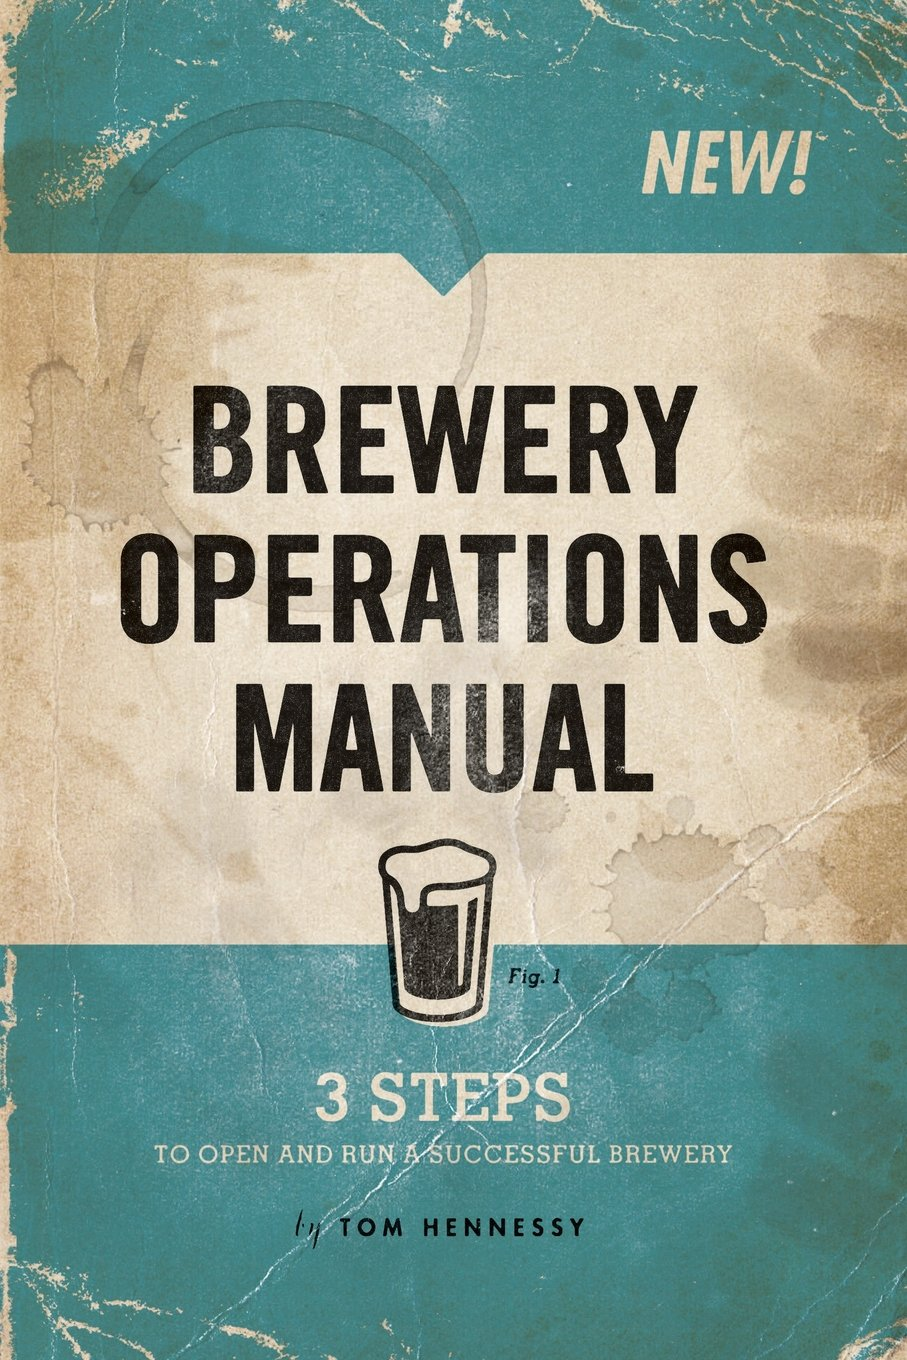 Brewery operations manual tom hennessy 9780578143743 amazon brewery operations manual tom hennessy 9780578143743 amazon books malvernweather Image collections